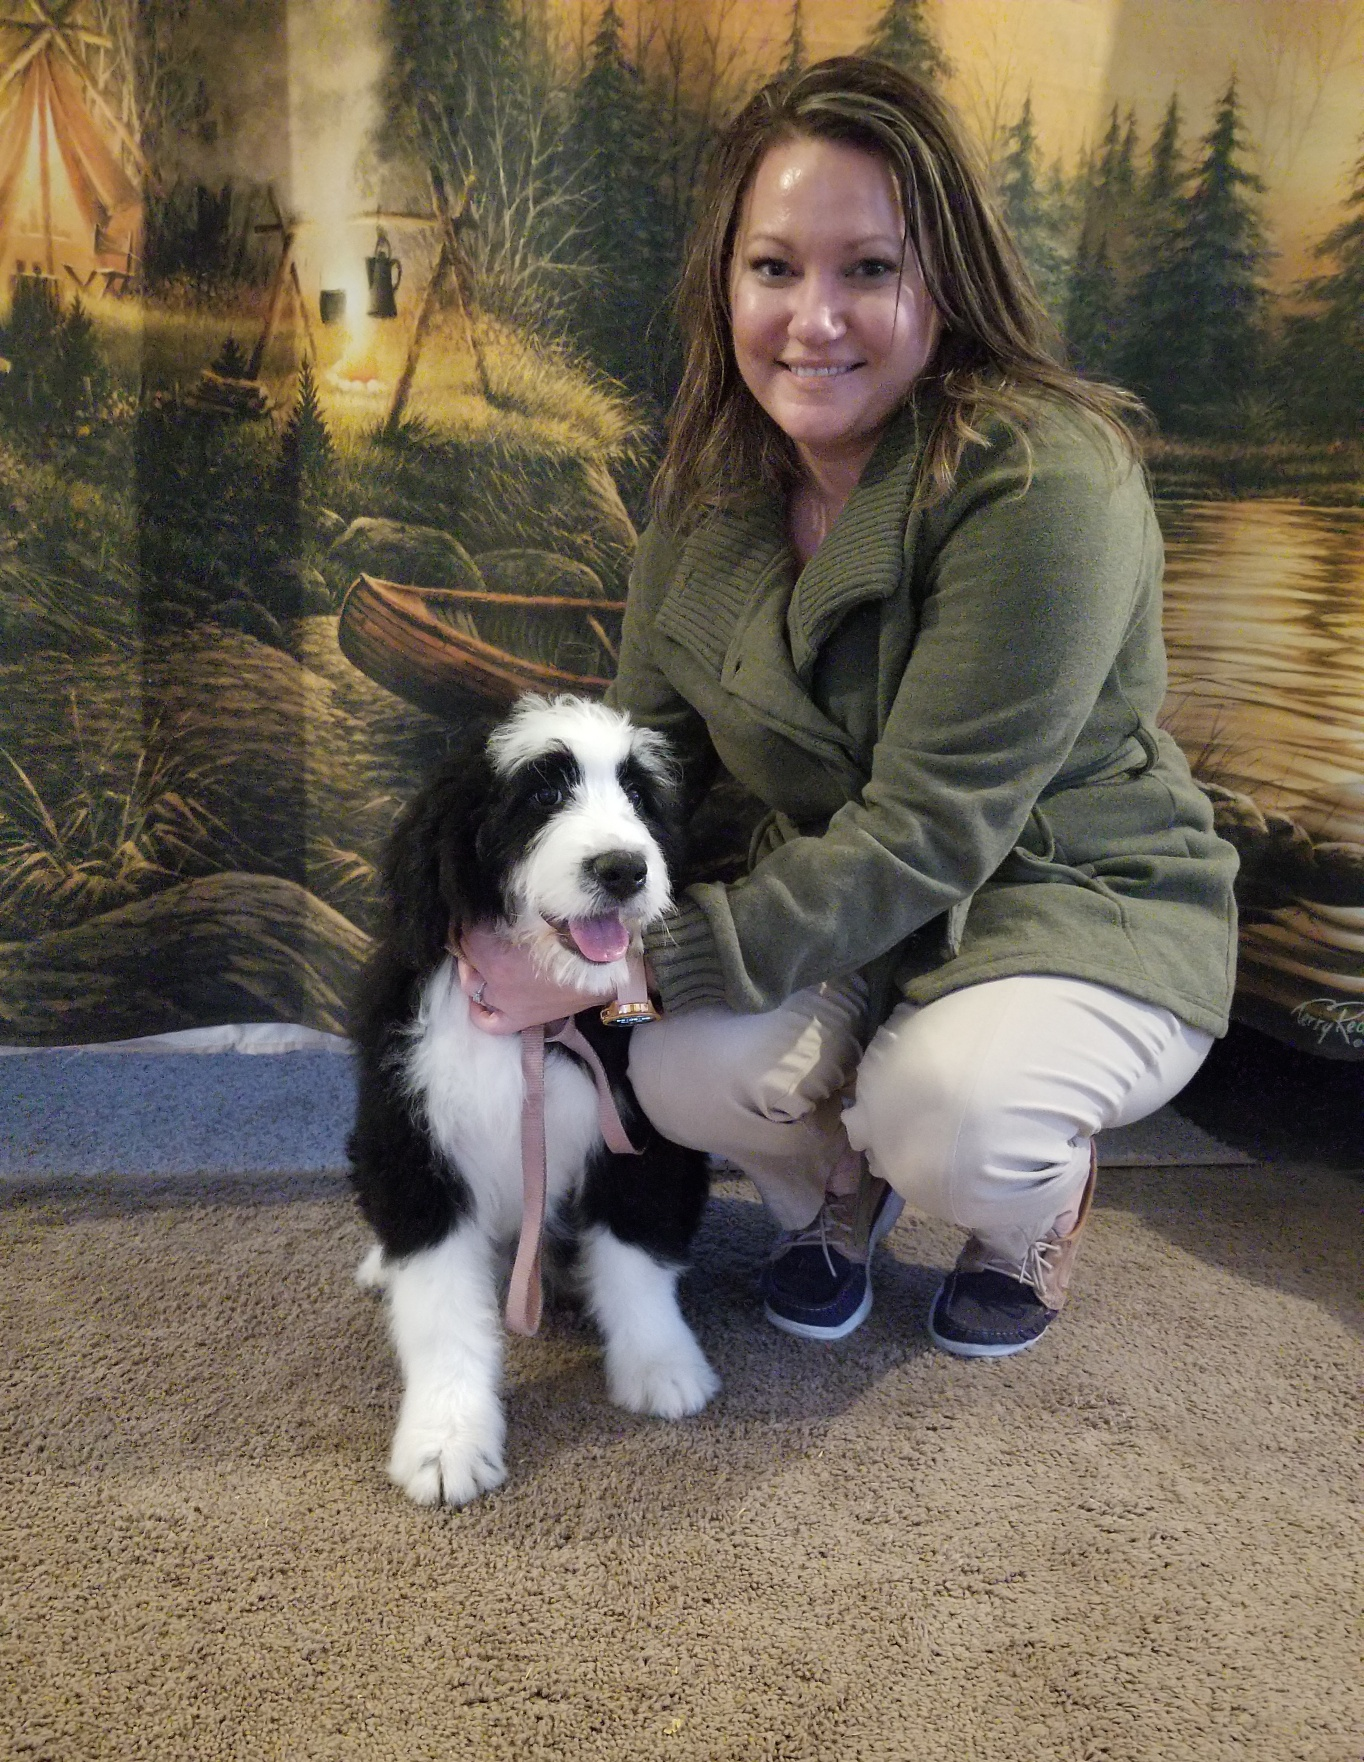 Daisy has found her forever home with Joanna Noel and family from Bloomington Il. She will get to be a service dog.